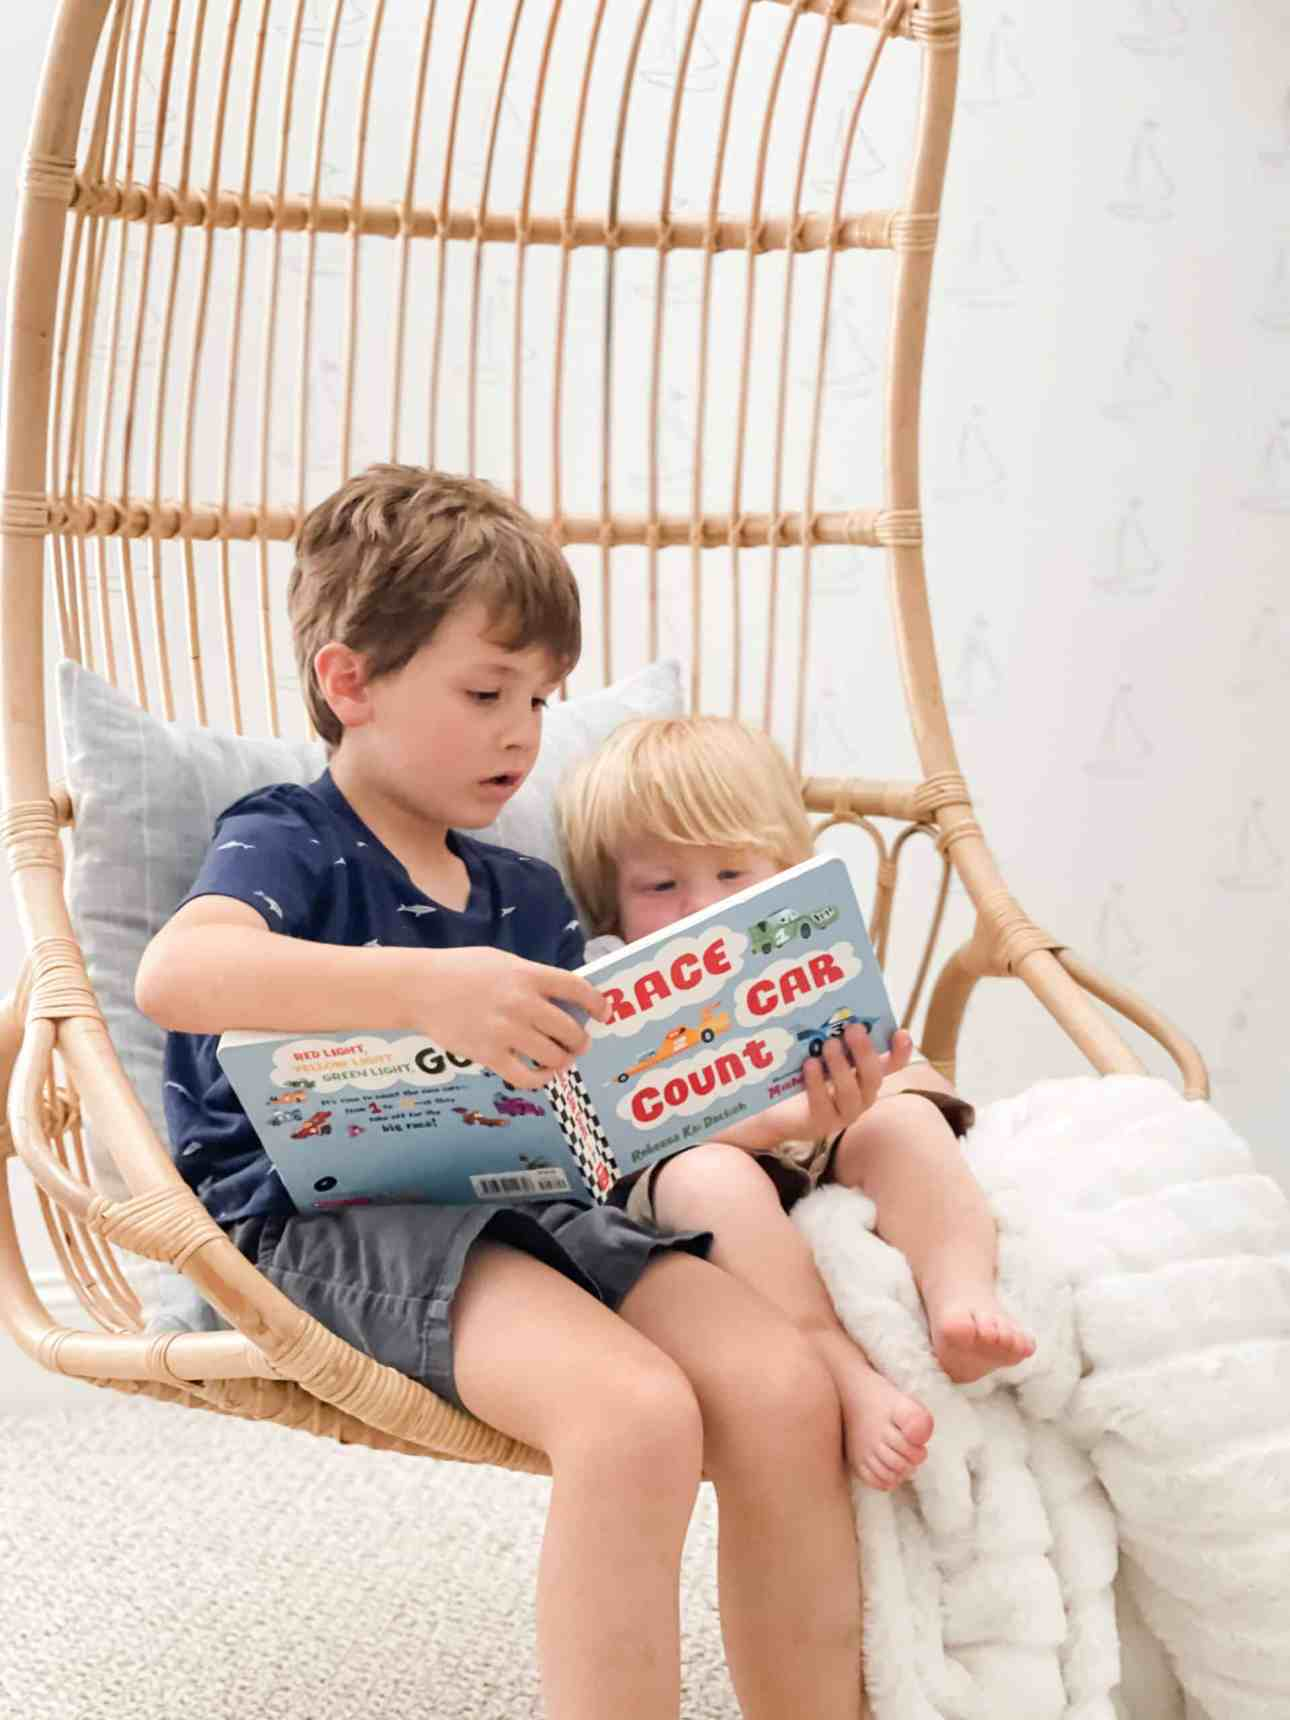 Older brother reading a book to little brother in the hanging rattan chair from Serena & Lily.